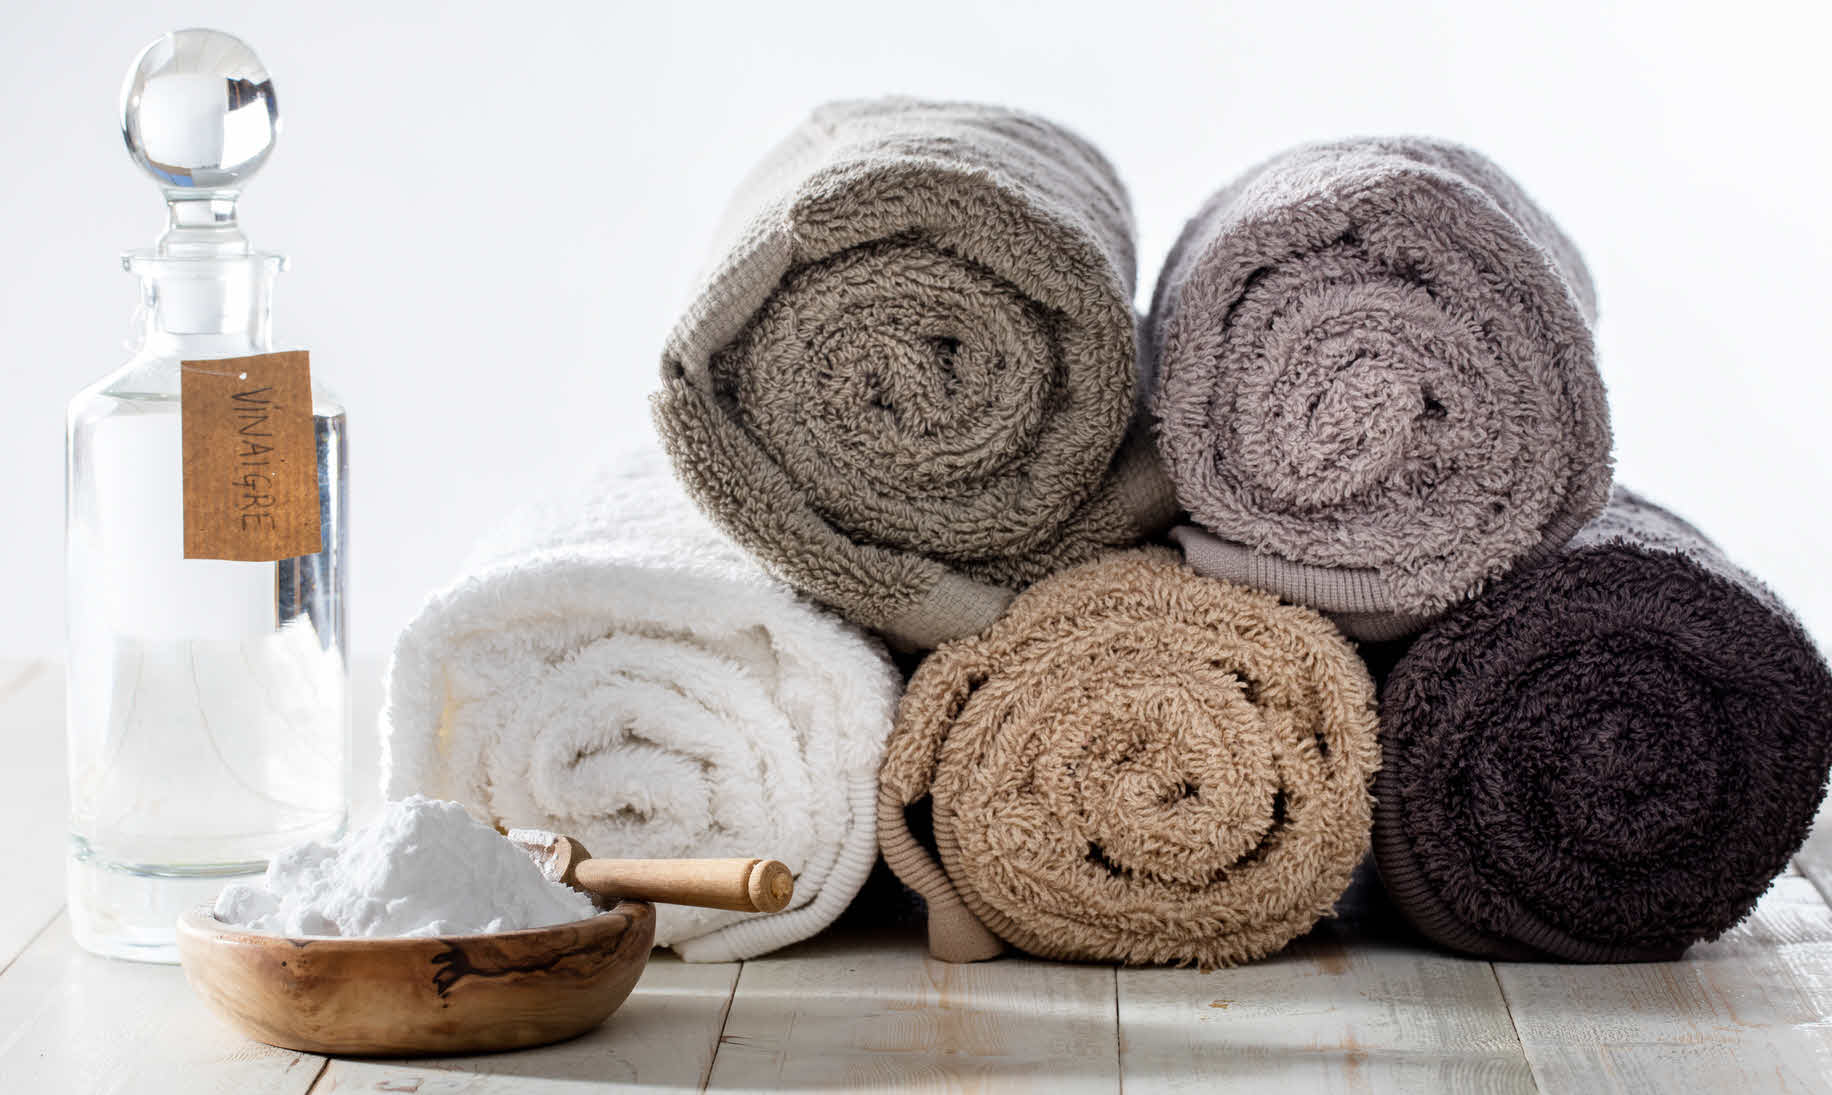 Reviving bath towels with baking soda and distilled vinegar